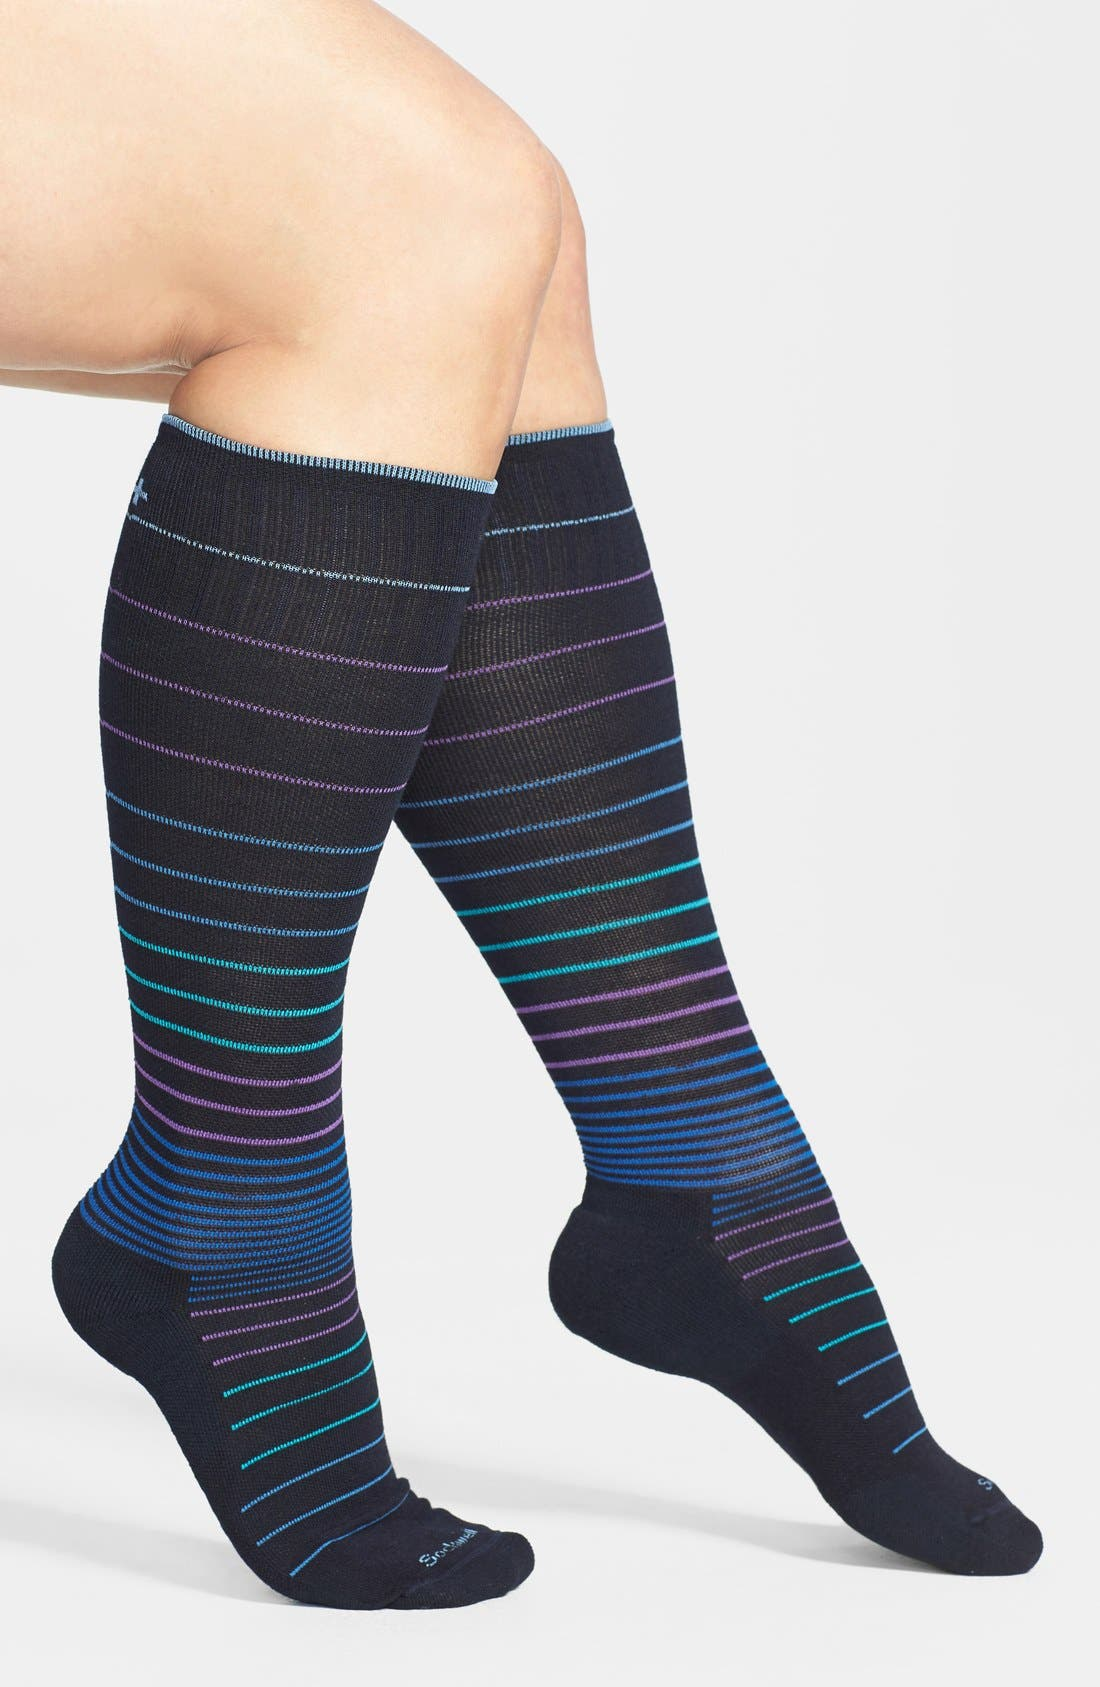 Circulator Compression Socks,                         Main,                         color, NAVY BLACK/ BLUE STRIPES